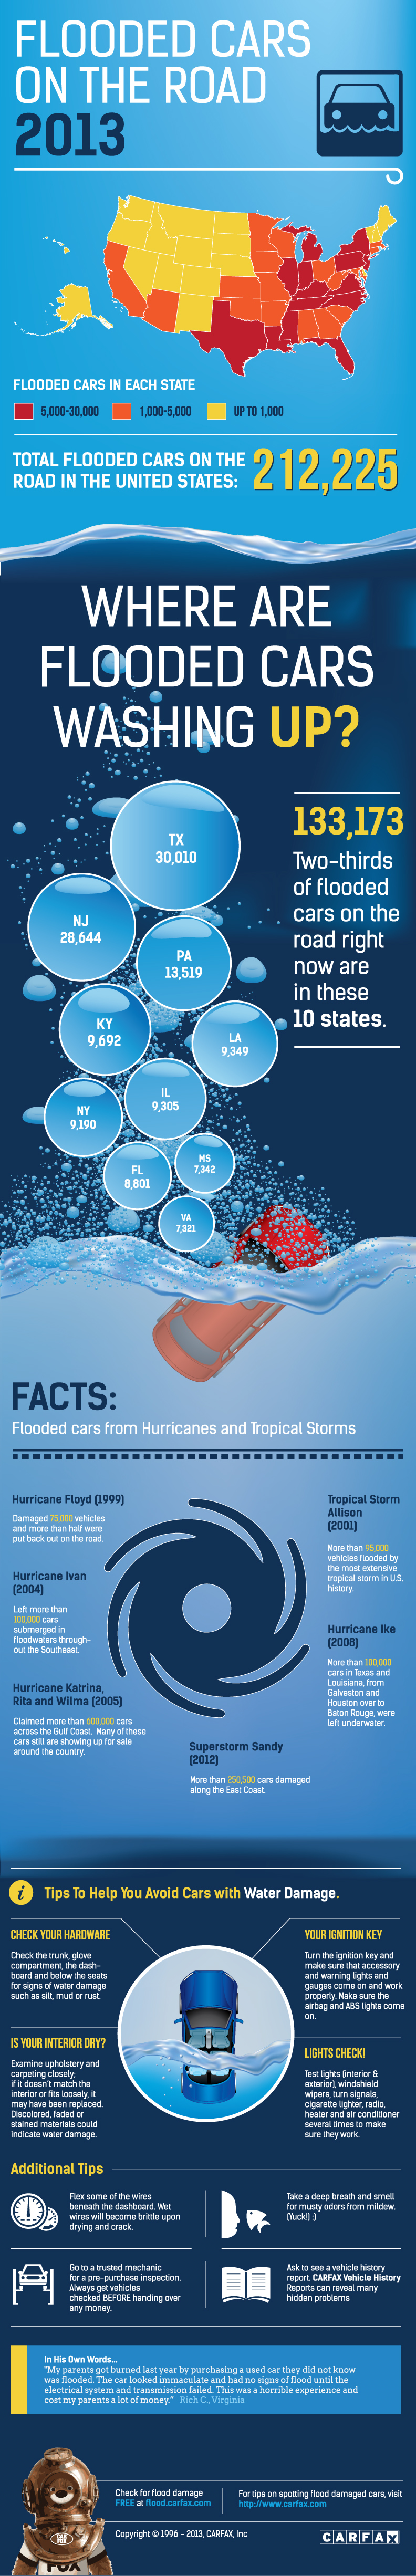 infographic on flood damaged cars for 2012